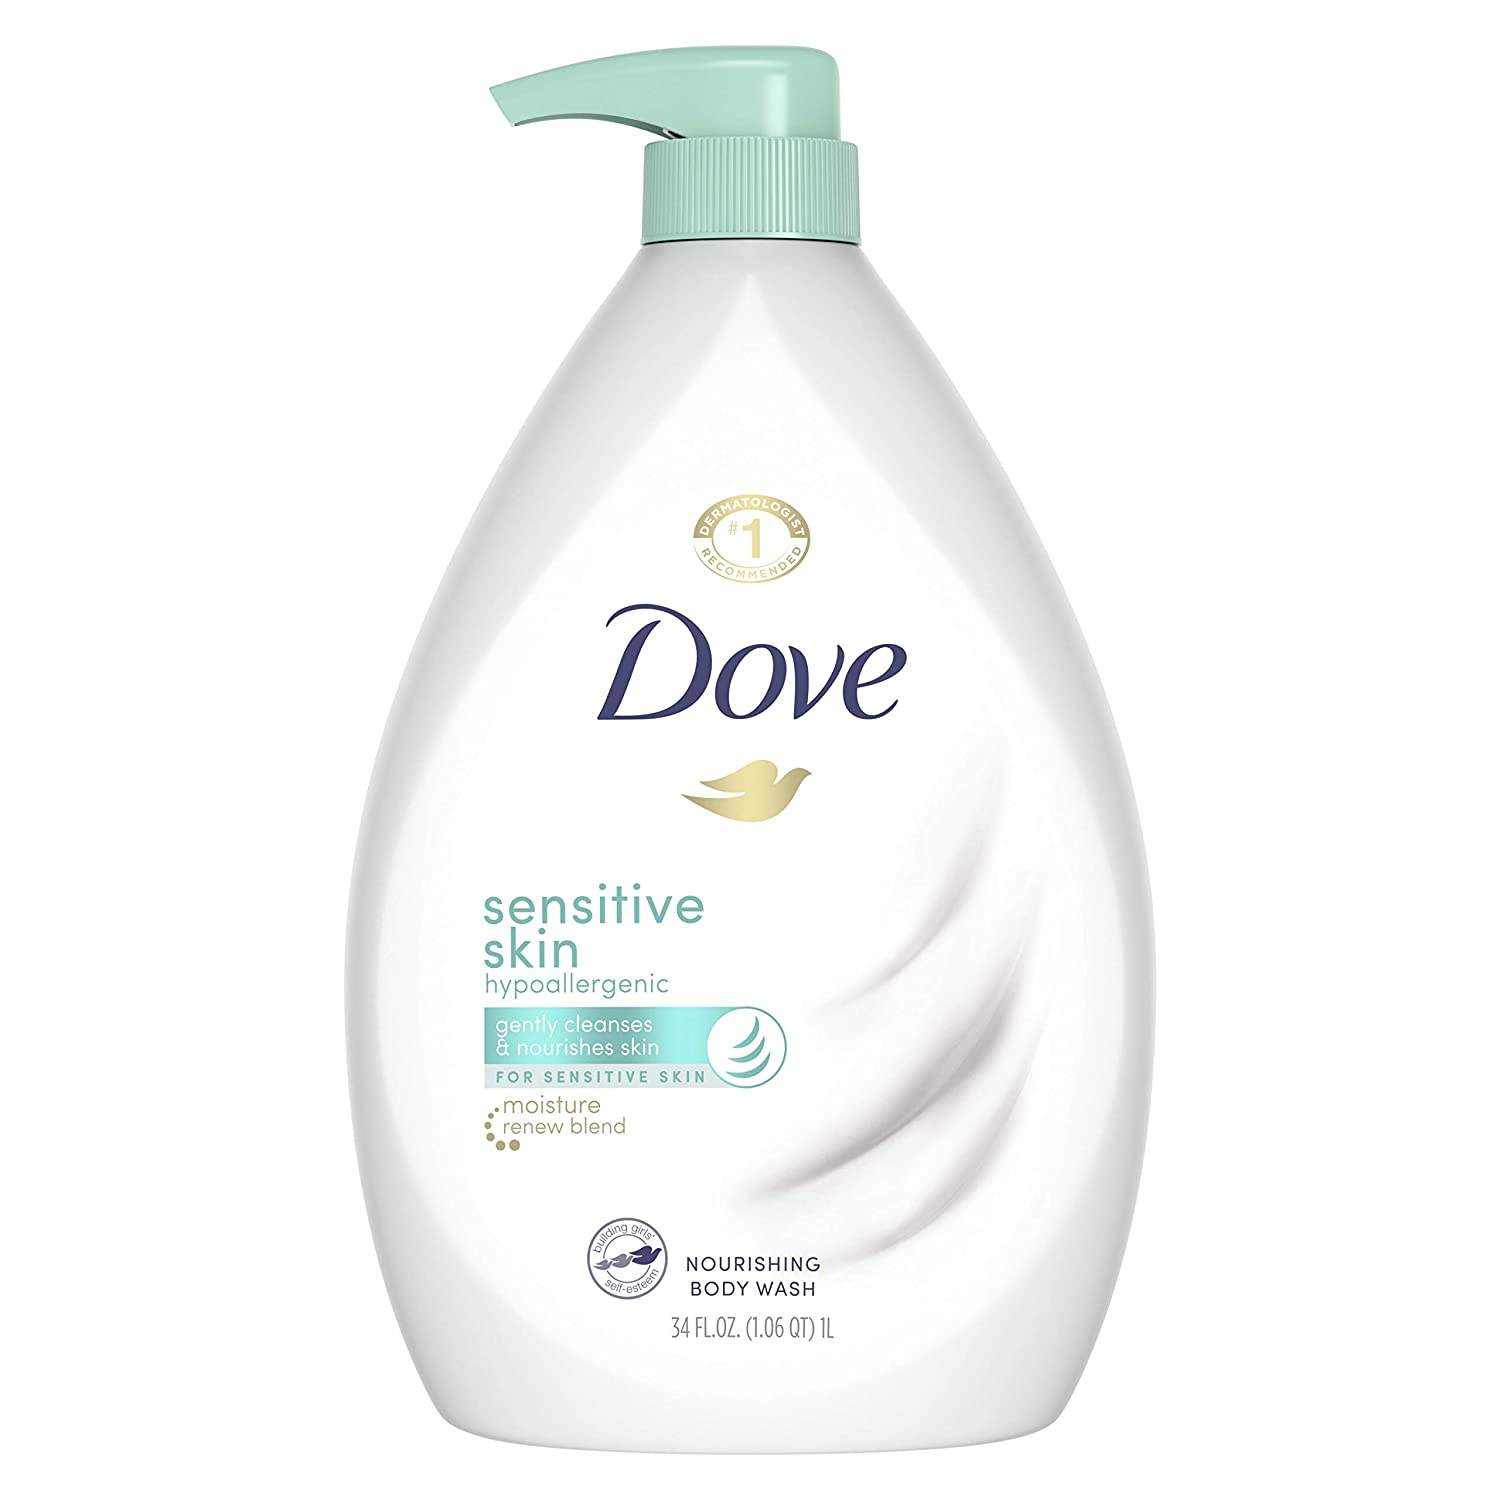 Dove Body Wash for Softer and Smoother Skin Sensitive Skin , 34 oz $5.58